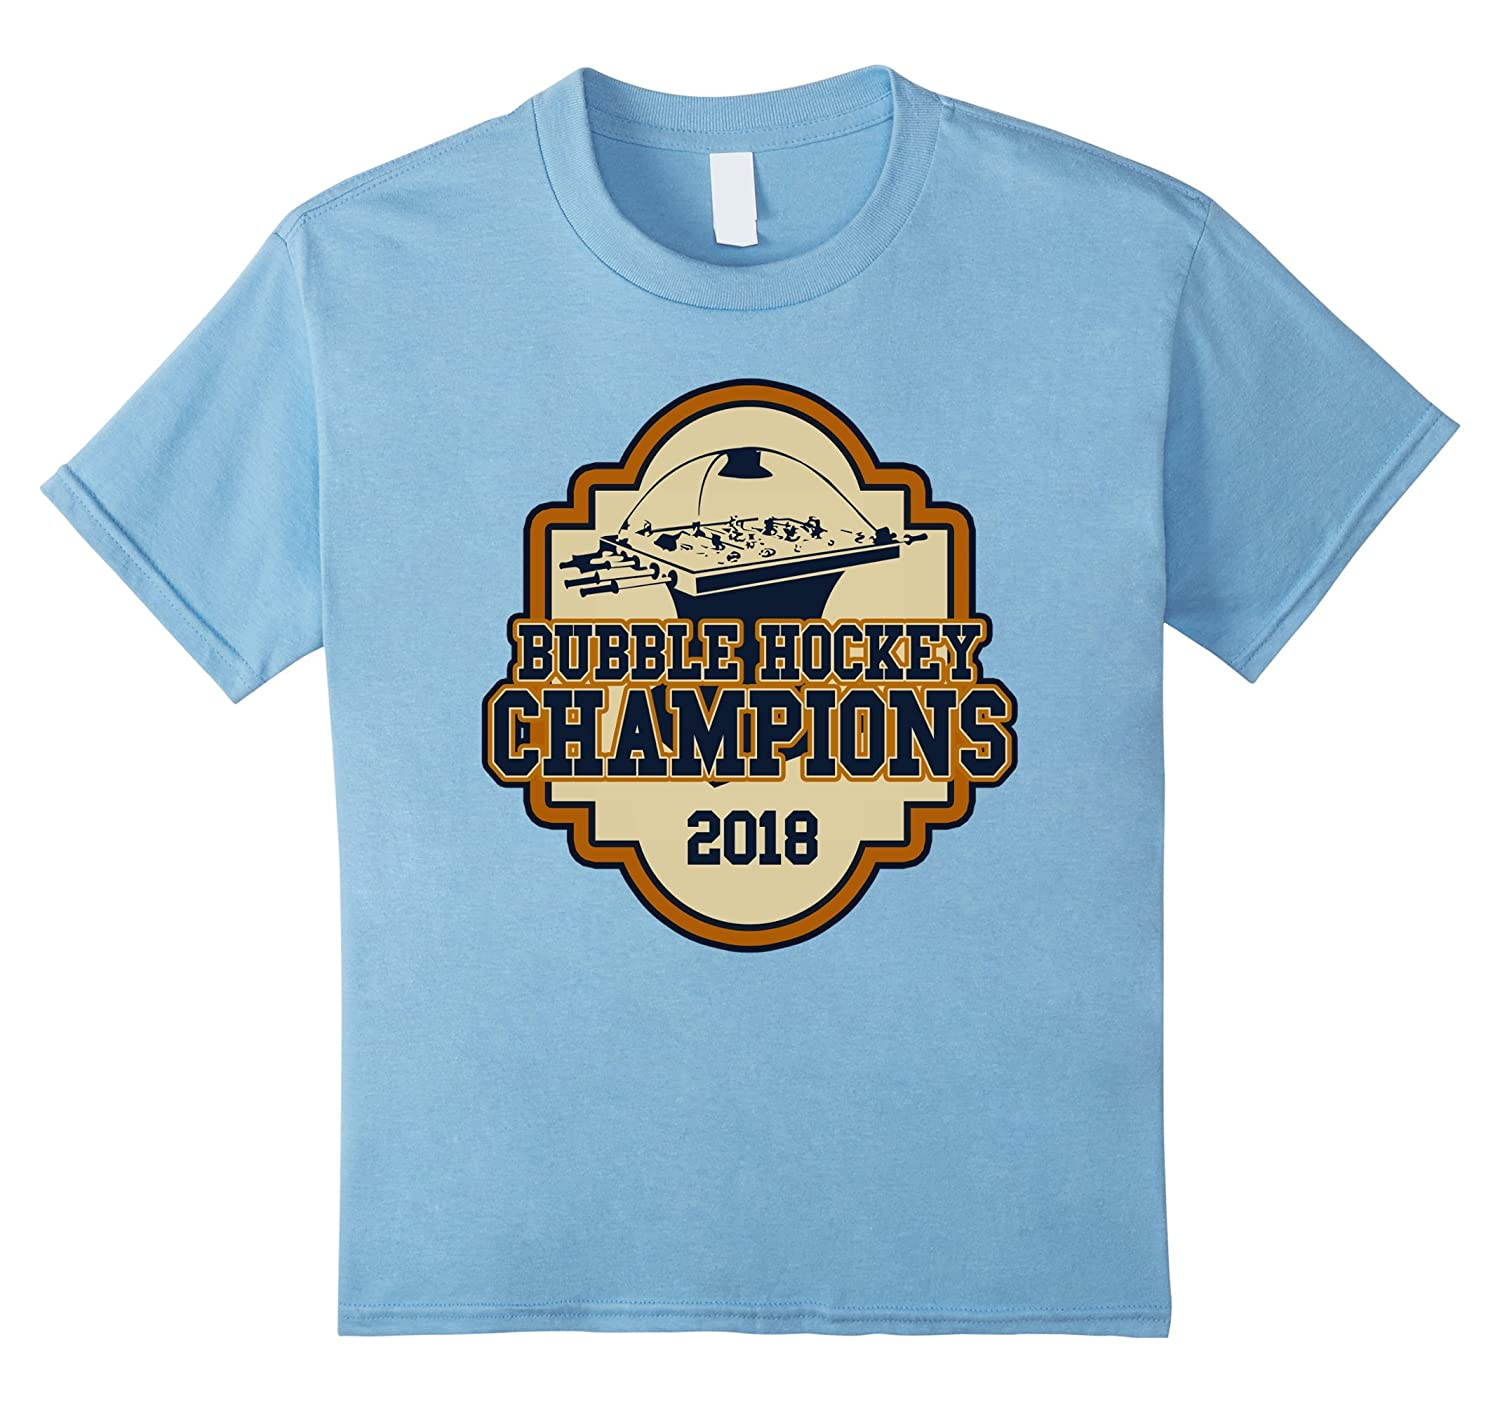 Kids Bubble Hockey Champions T Shirt-Colonhue